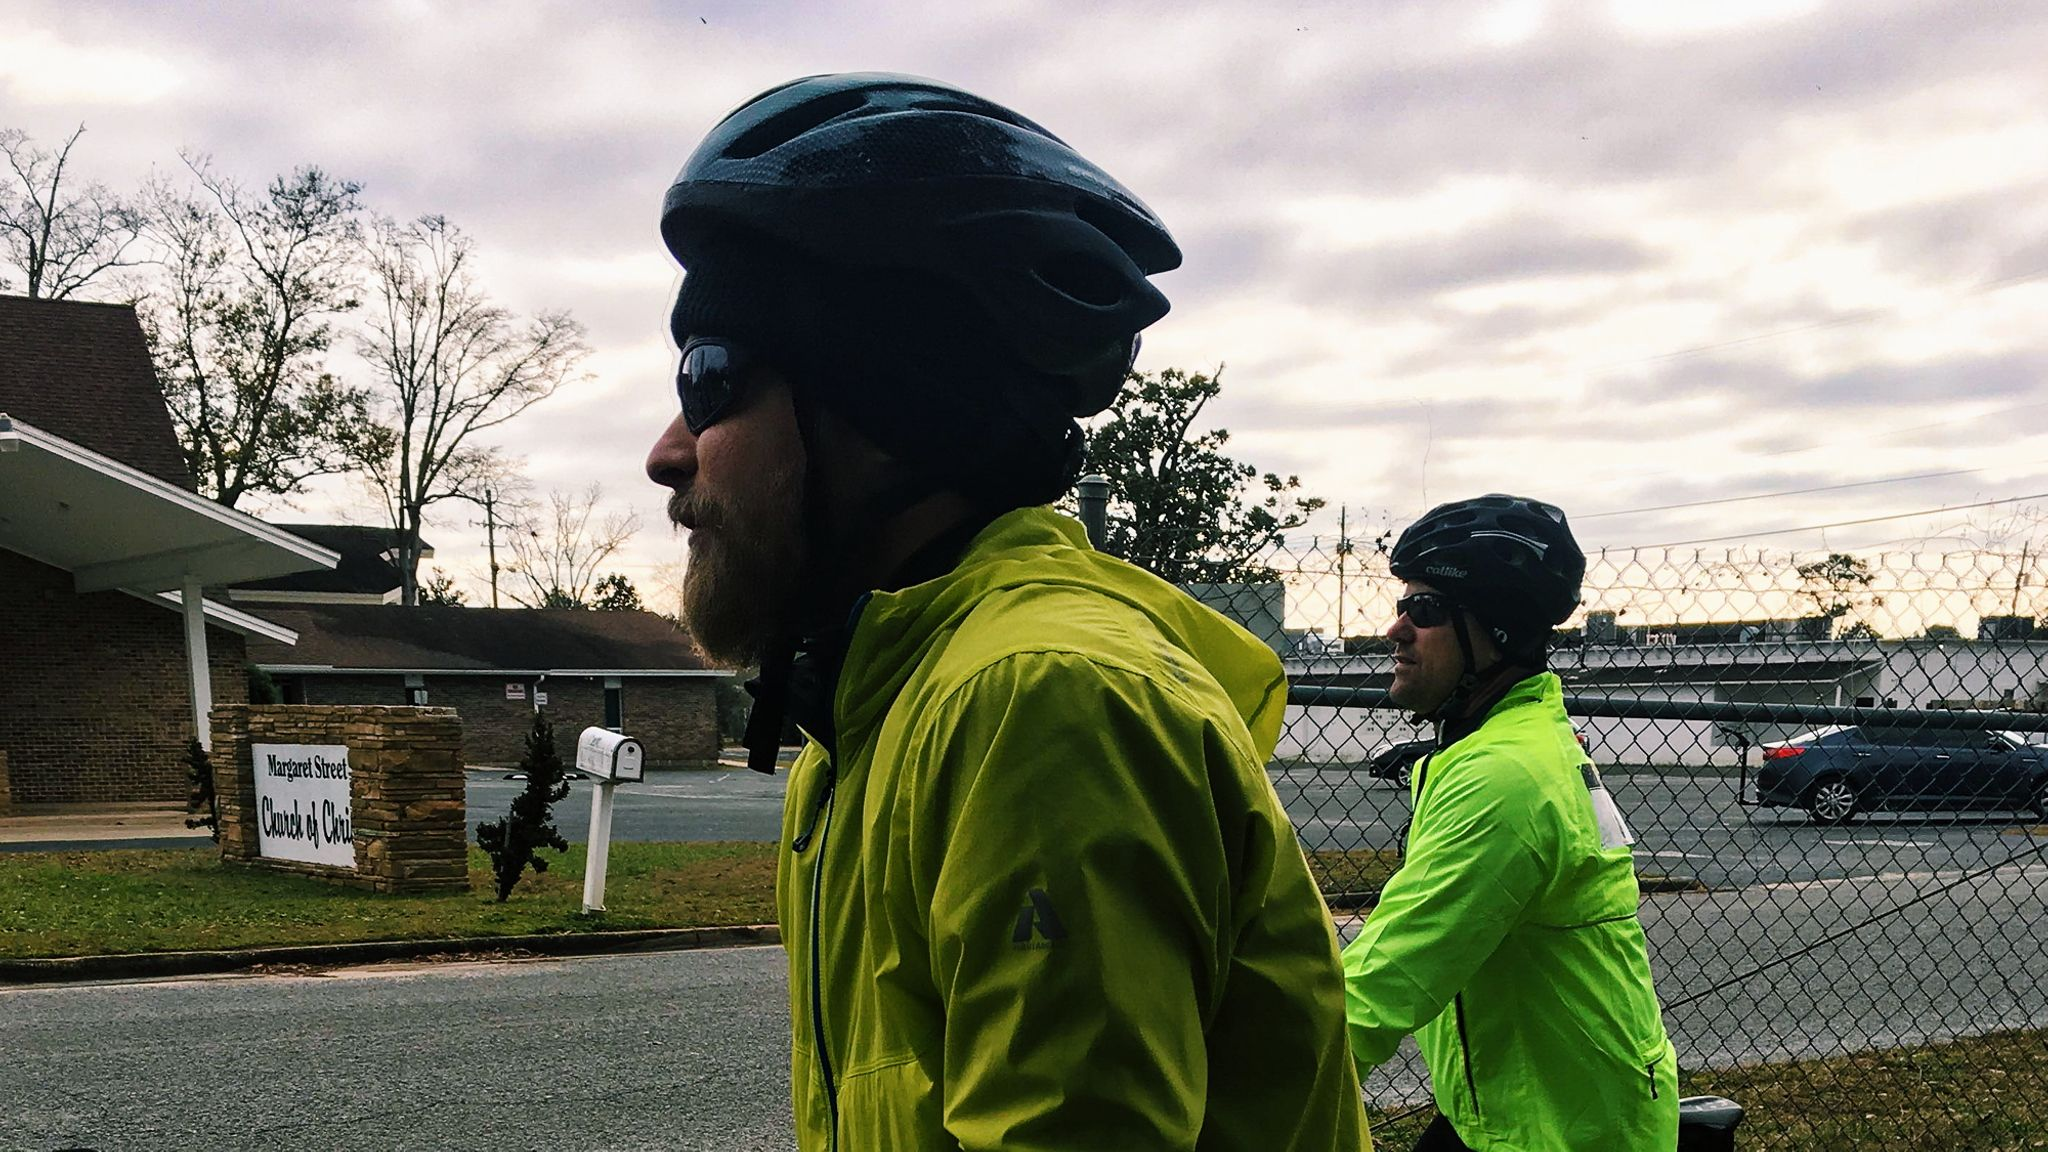 Team MPPH Member and Fit For Hope Athlete, Beau Vermillion, mentally preparing for his longest ever ride, all to raise support for abused women.